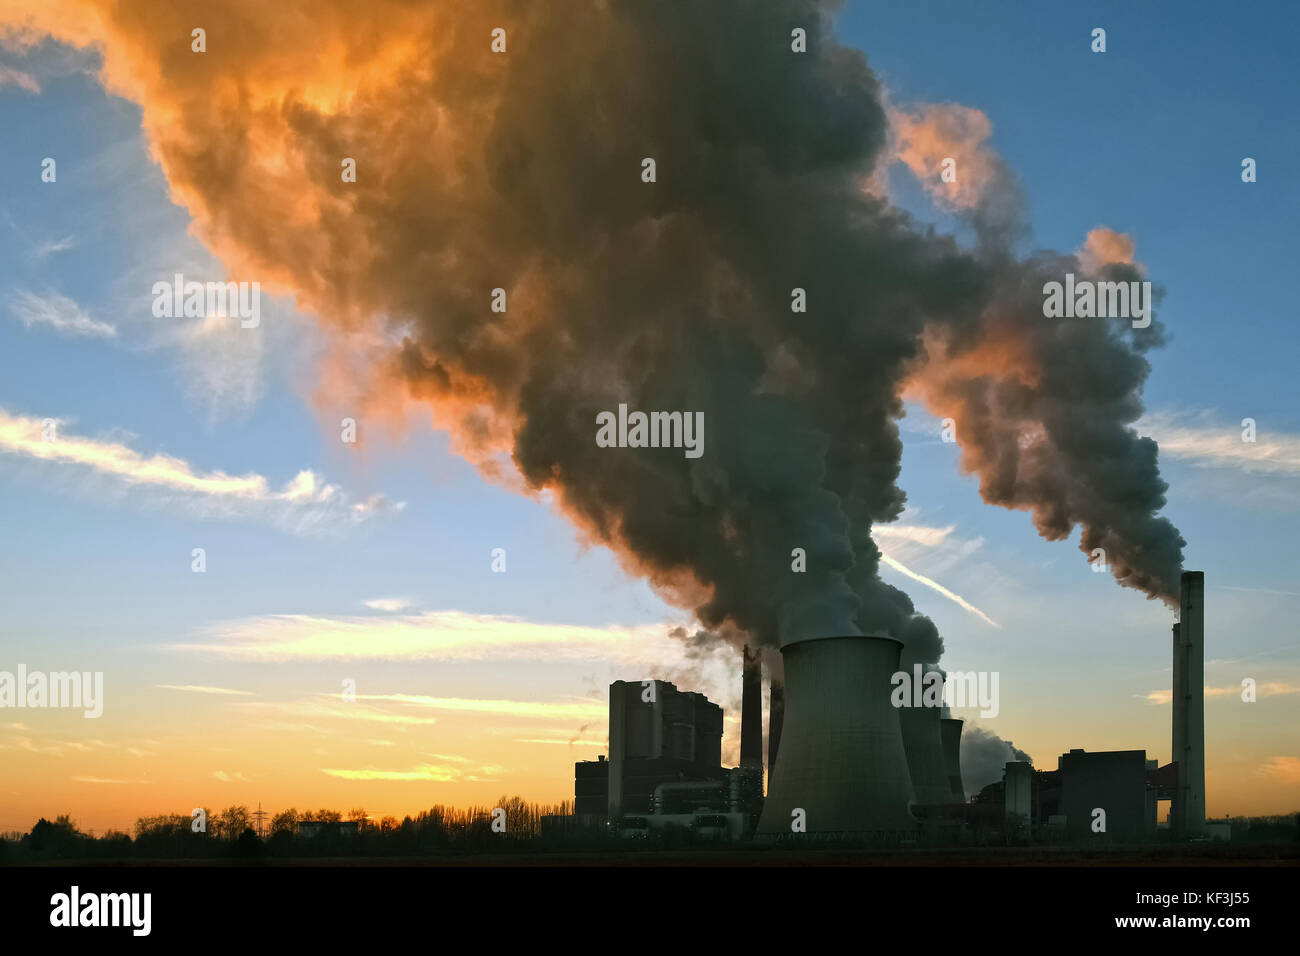 coal-fired power plant essay Zero emission fuel-fired power plant with ion transport is described in the excellent essay by m coal-fired power plant and.